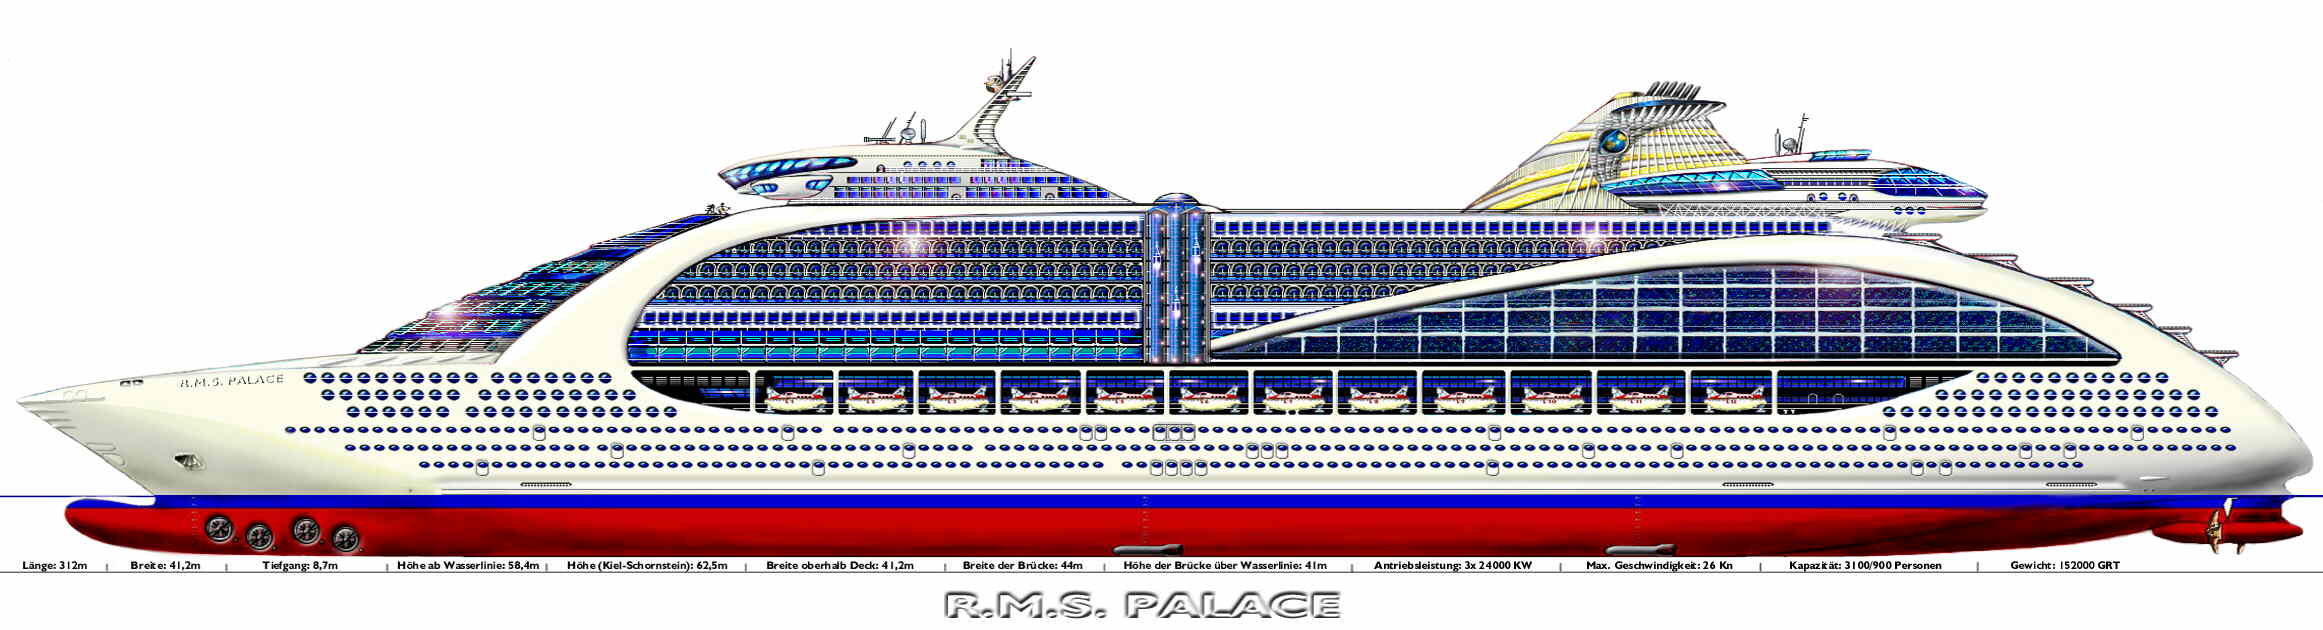 Cruise Drawing At Getdrawings Com Free For Personal Use